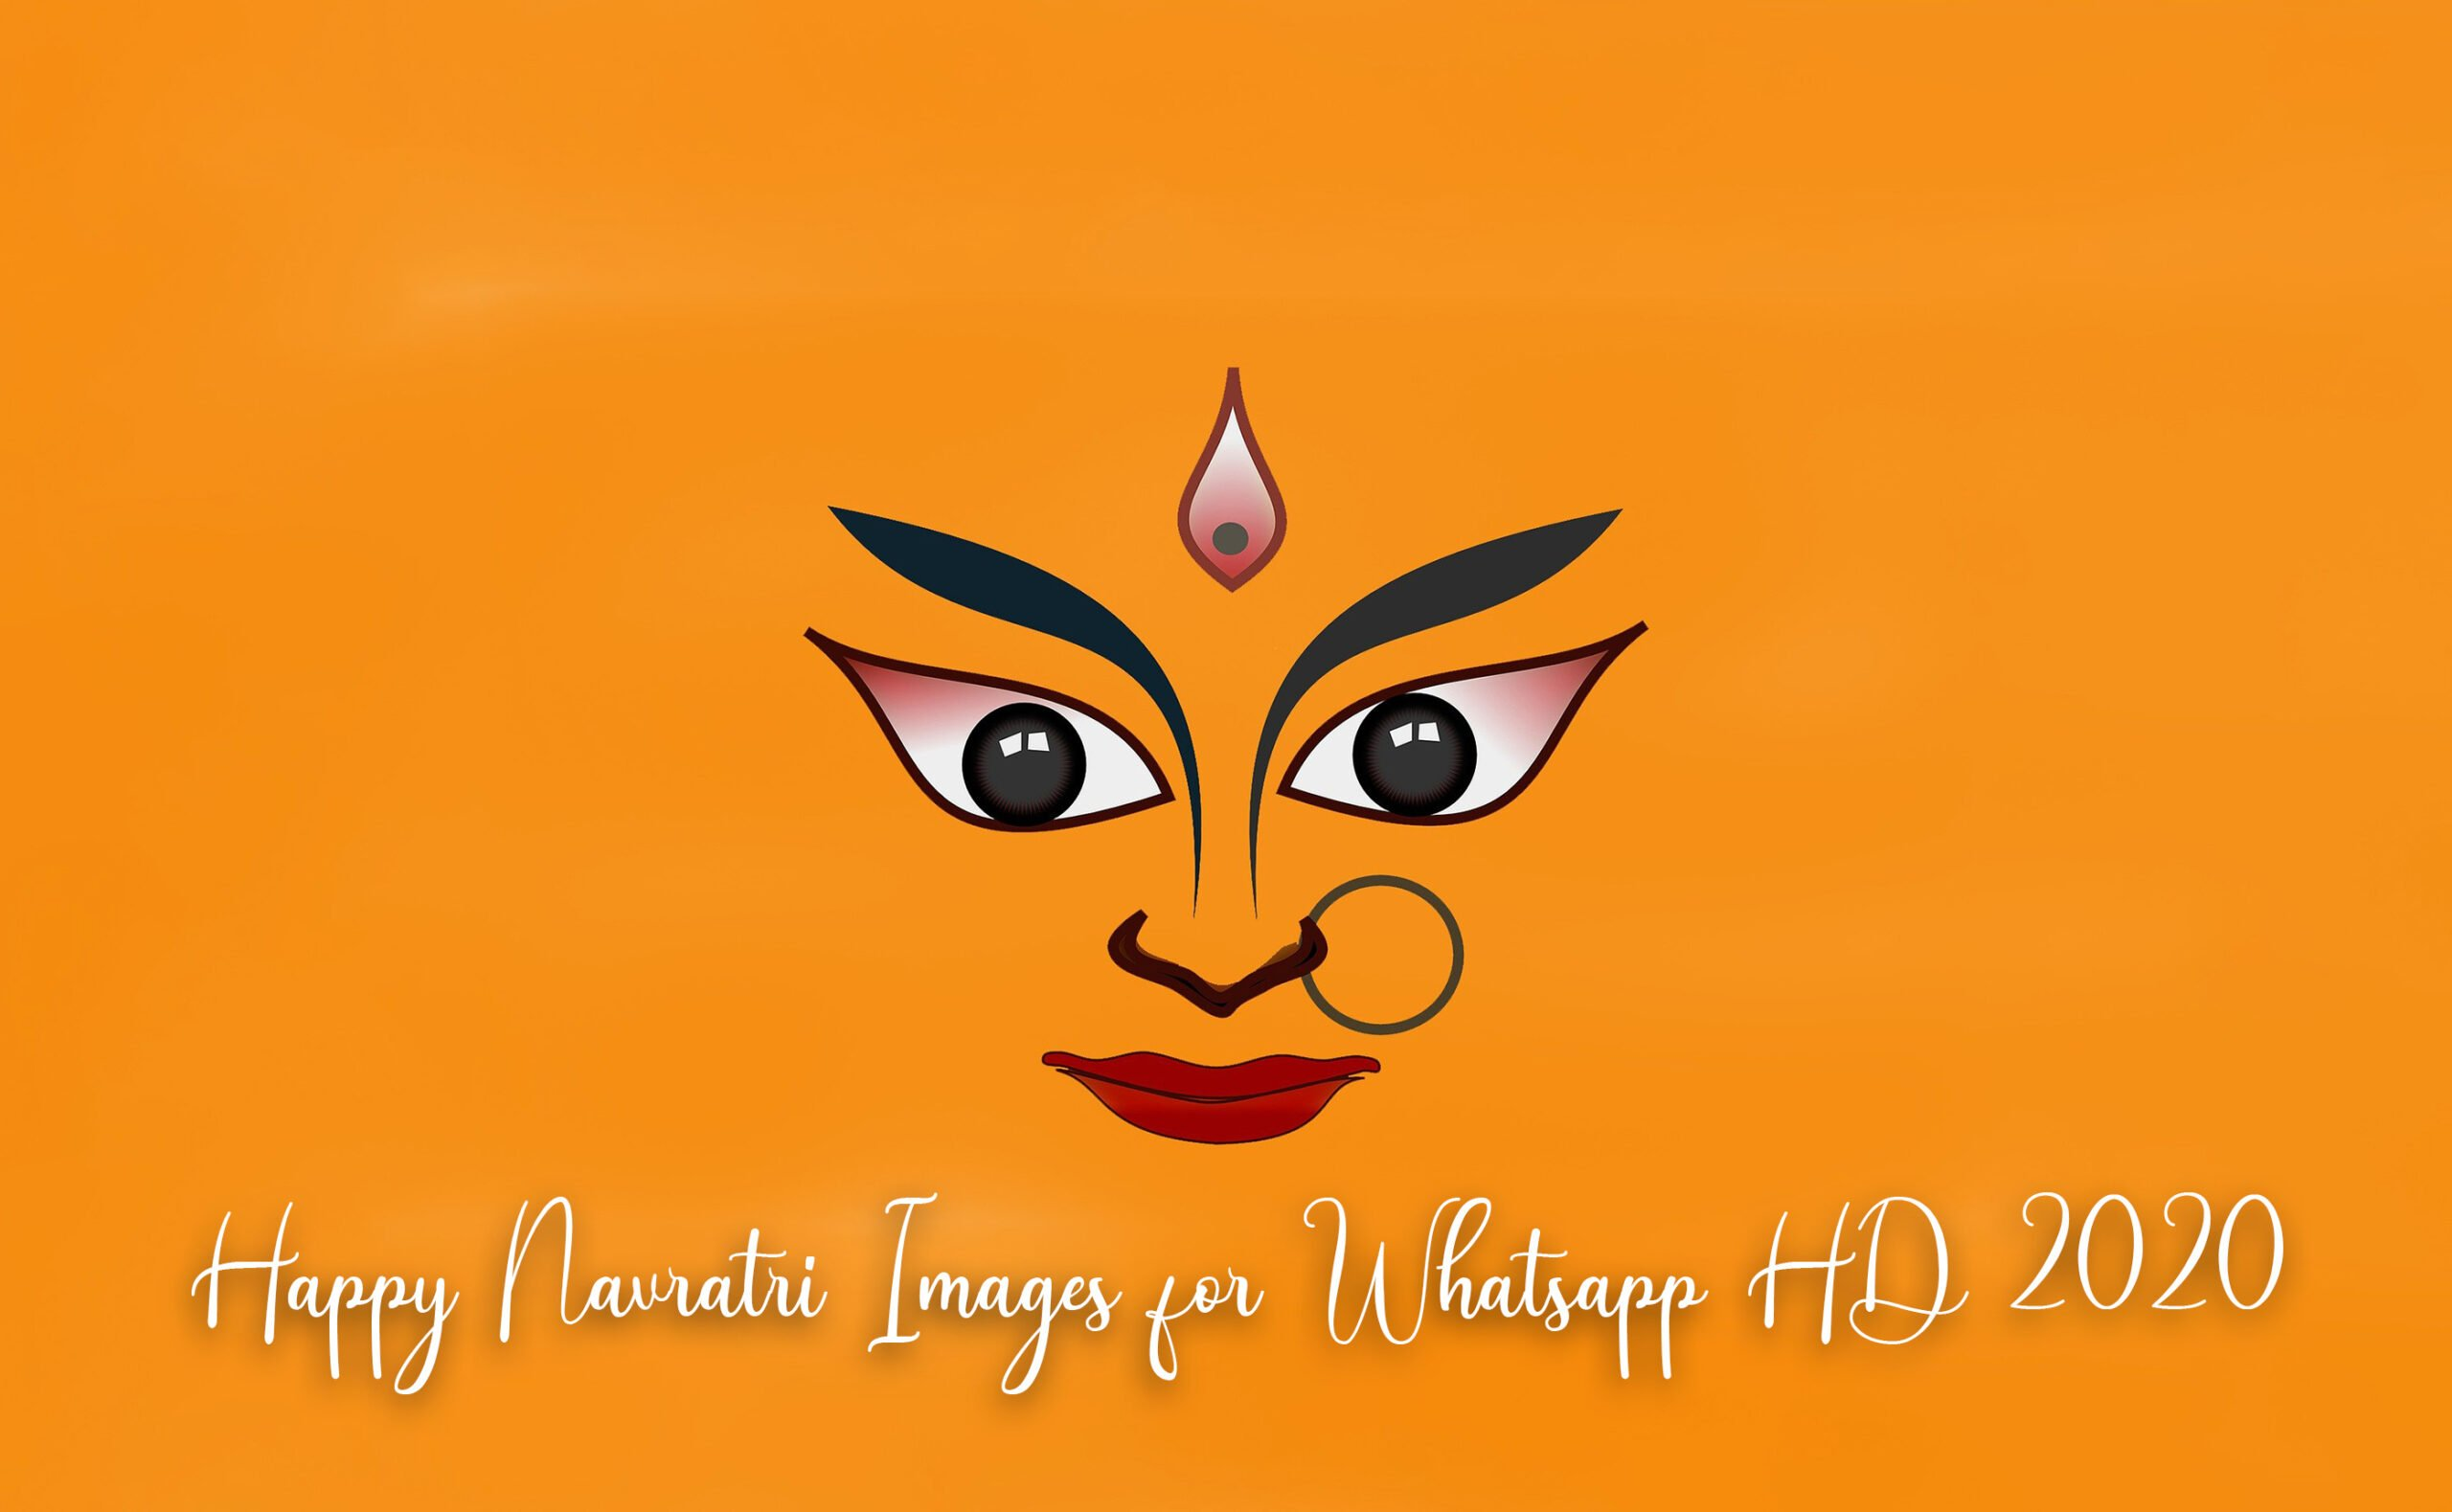 happy-navratri-images-for-whatsapp-hd-2020